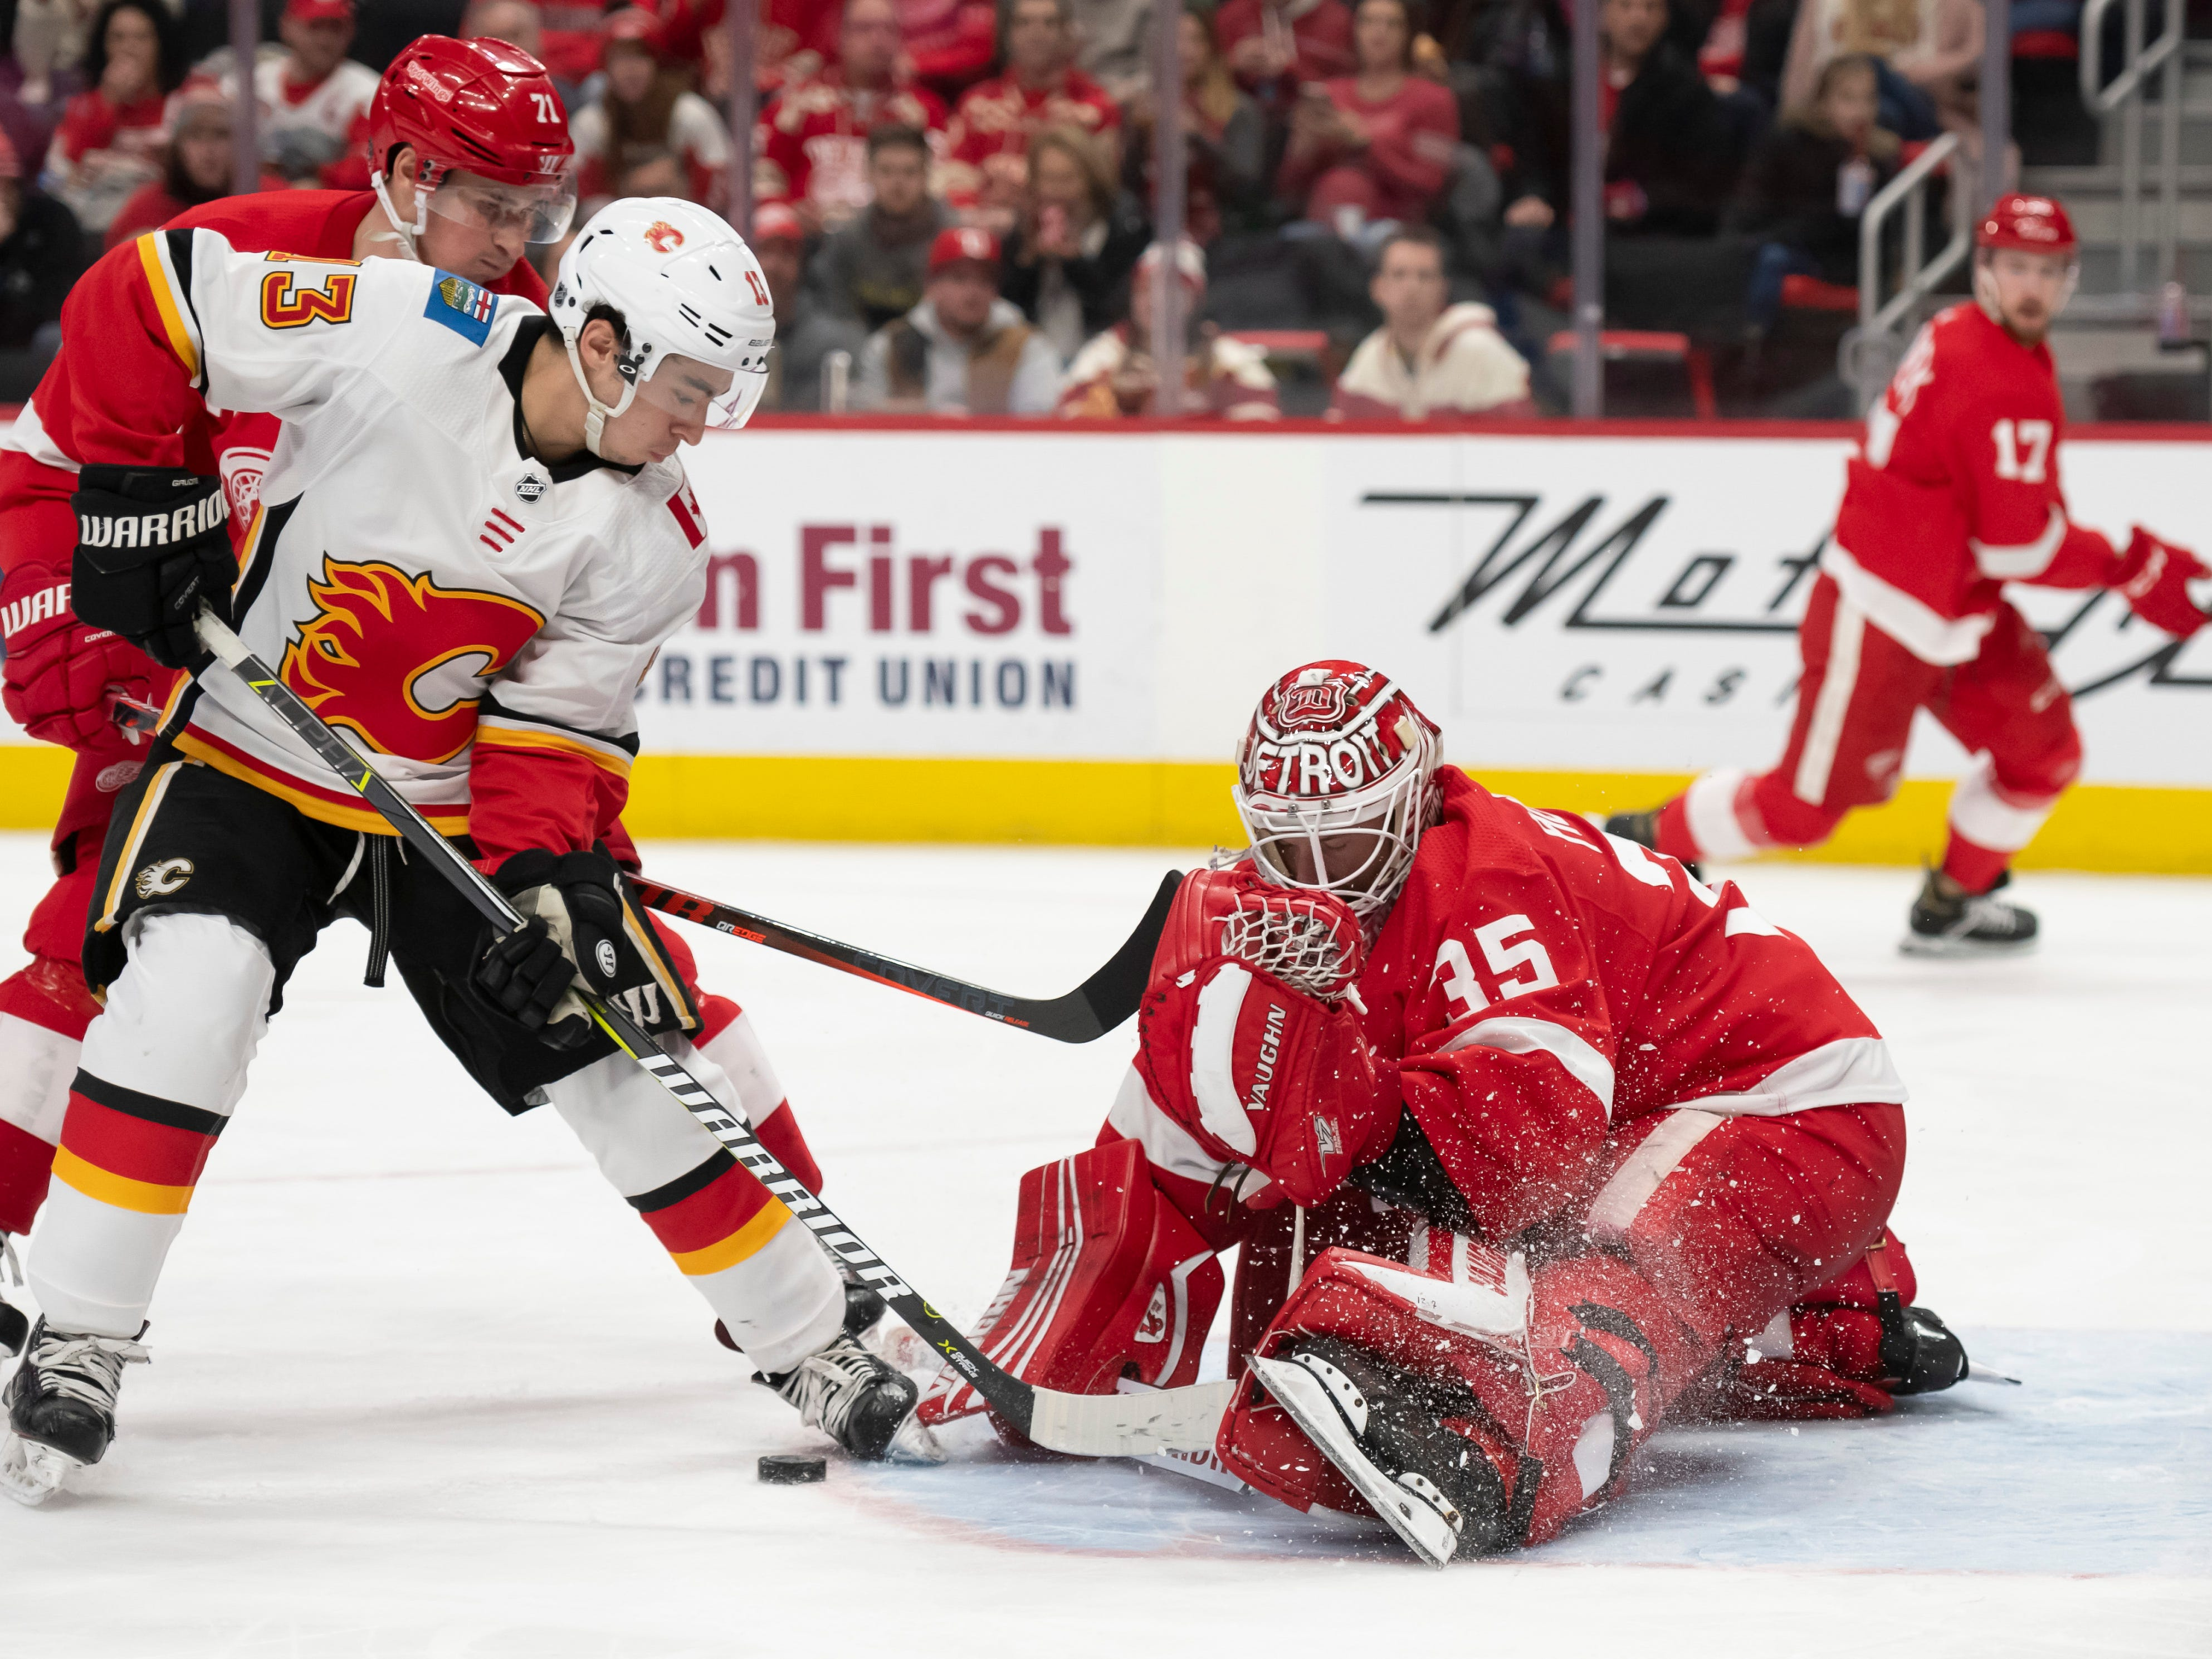 Calgary left wing Johnny Gaudreau tries to shoot the puck past Detroit goaltender Jimmy Howard in the second period.